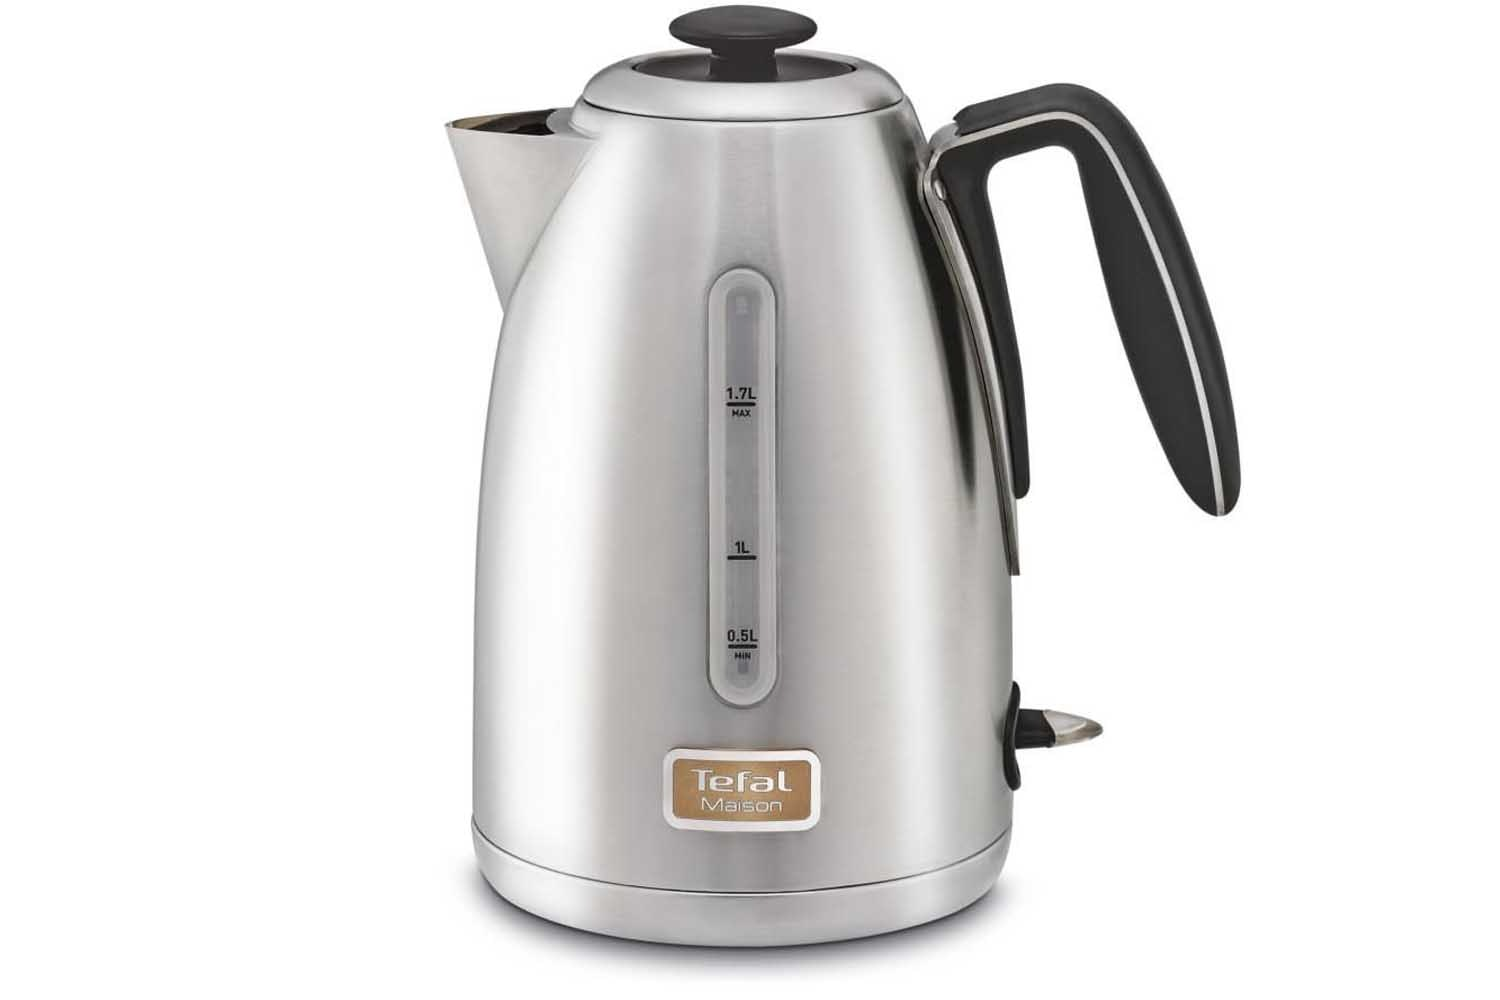 Tefal 1.7L Kettle | Stainless Steel